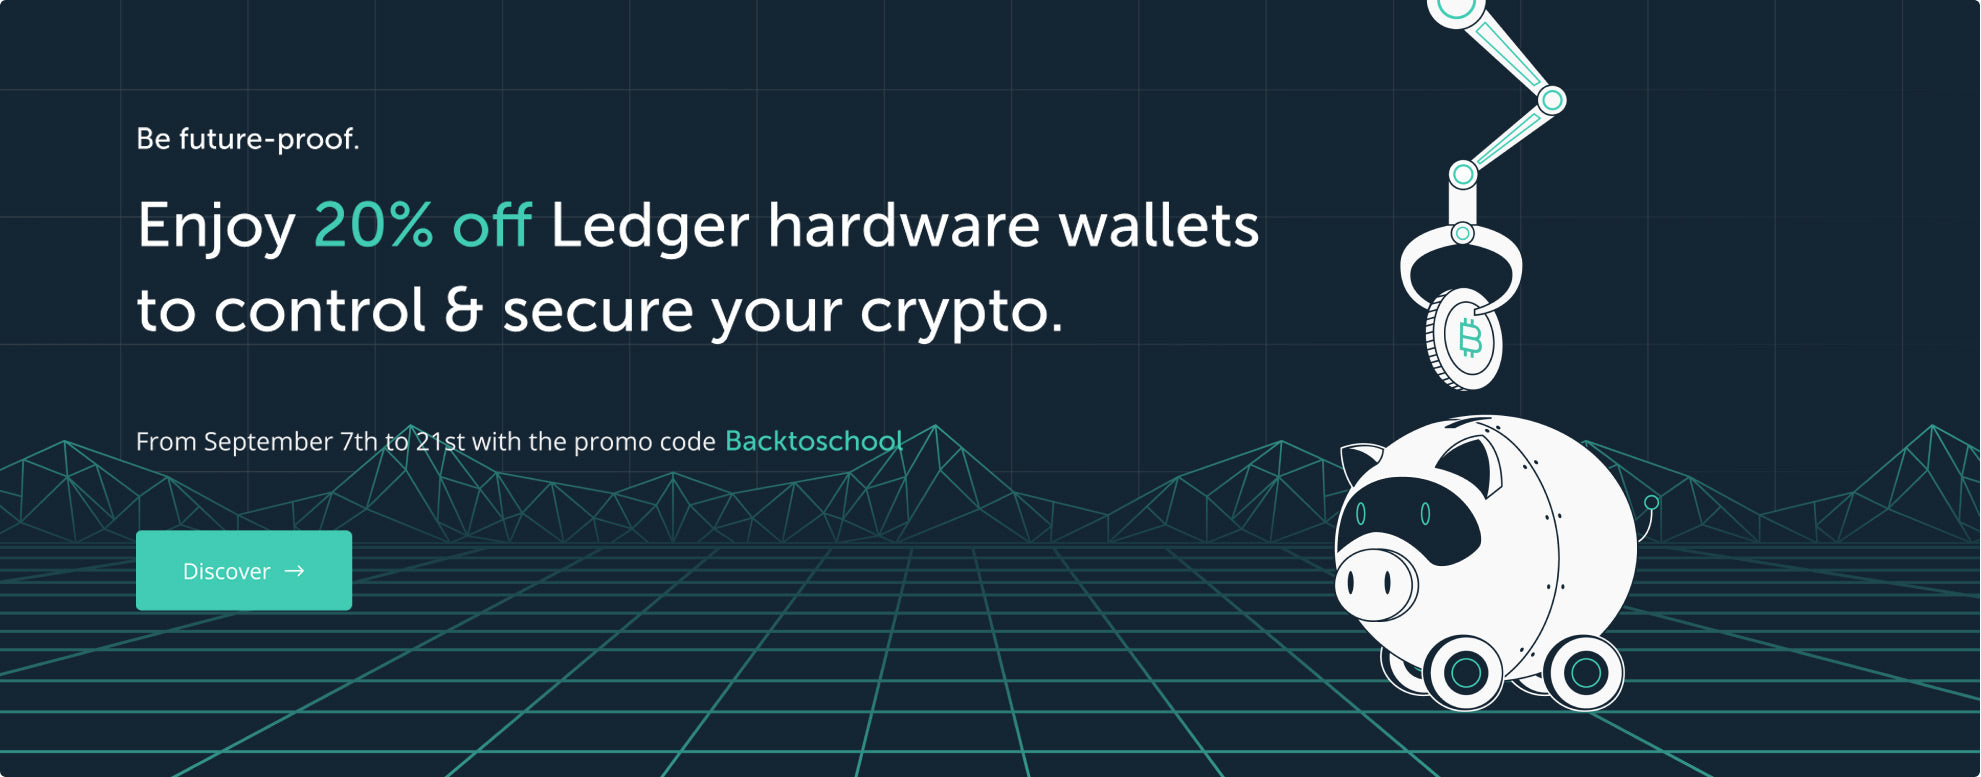 Enjoy 20% off Ledger hardware wallets